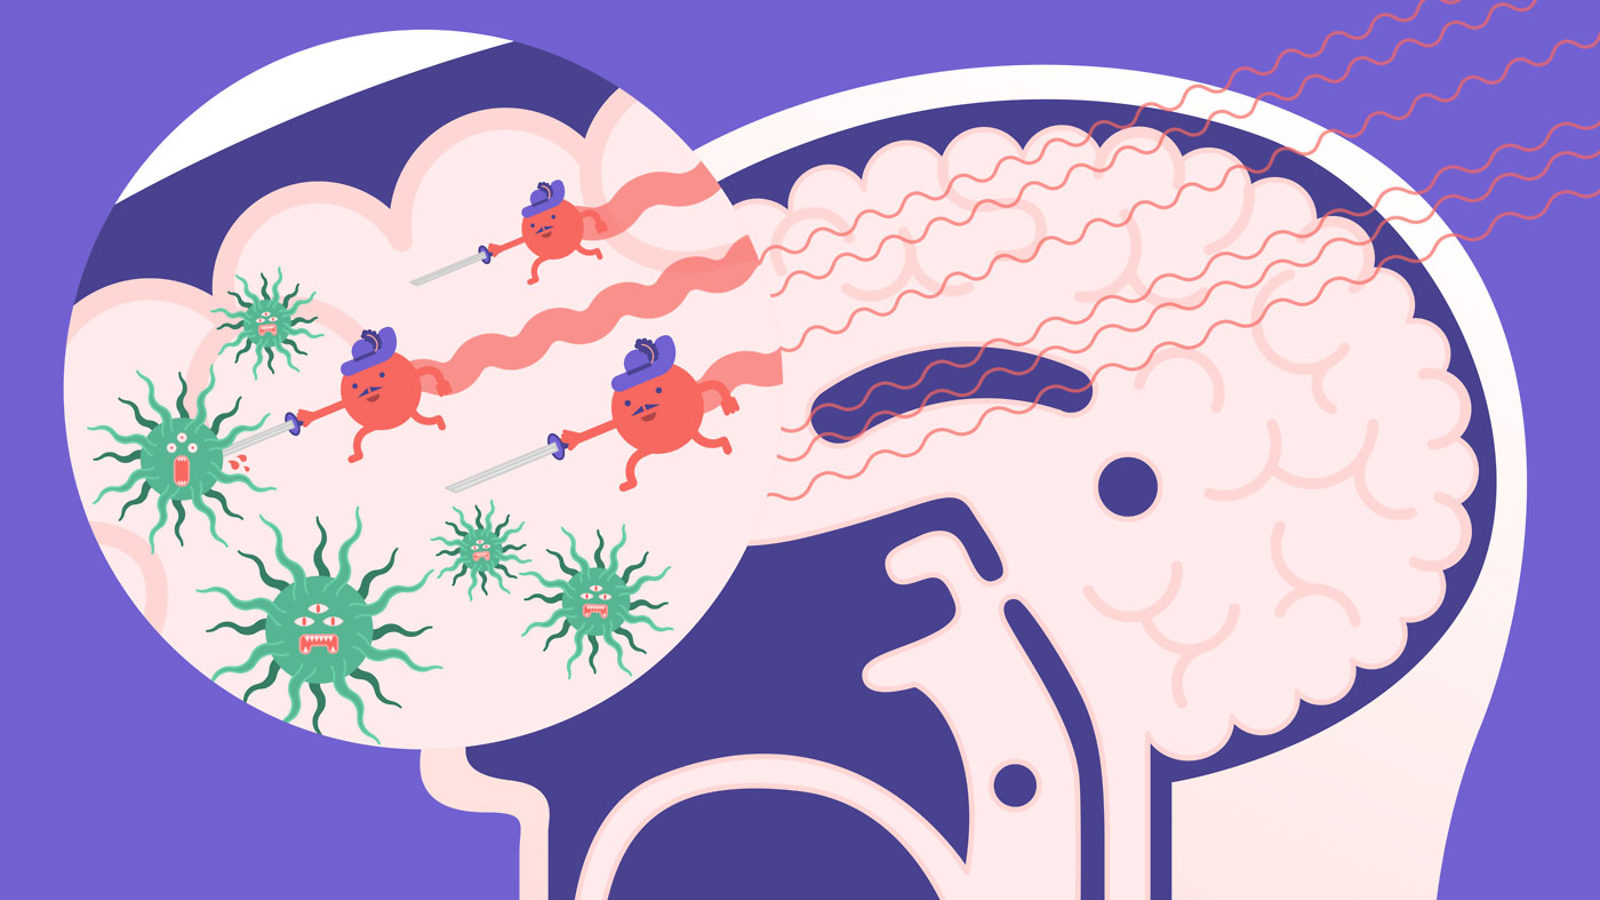 Illustration of particles fighting bacteria in someones brain